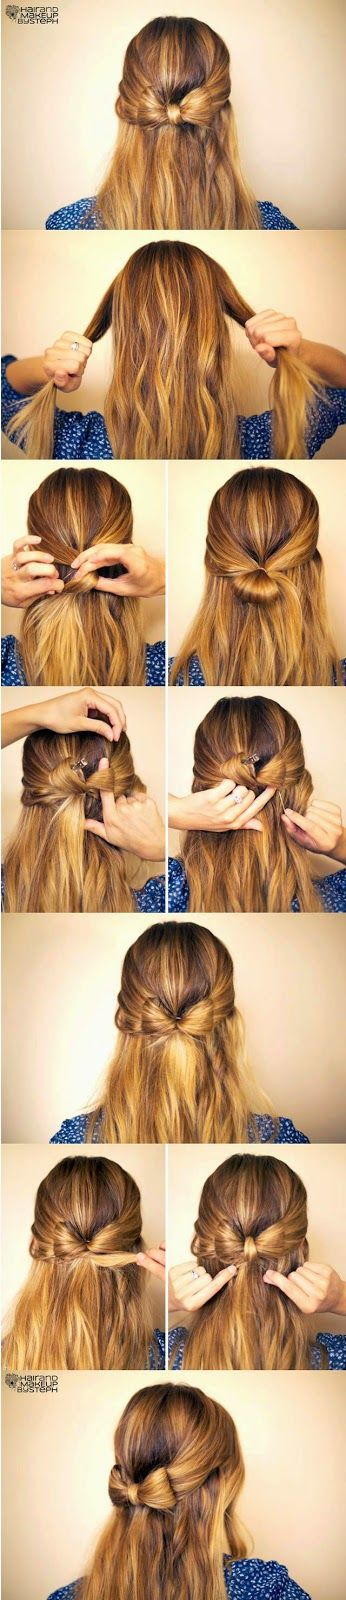 Fantastic 1000 Ideas About Diy Hairstyles On Pinterest Easy Diy Hairstyles For Women Draintrainus